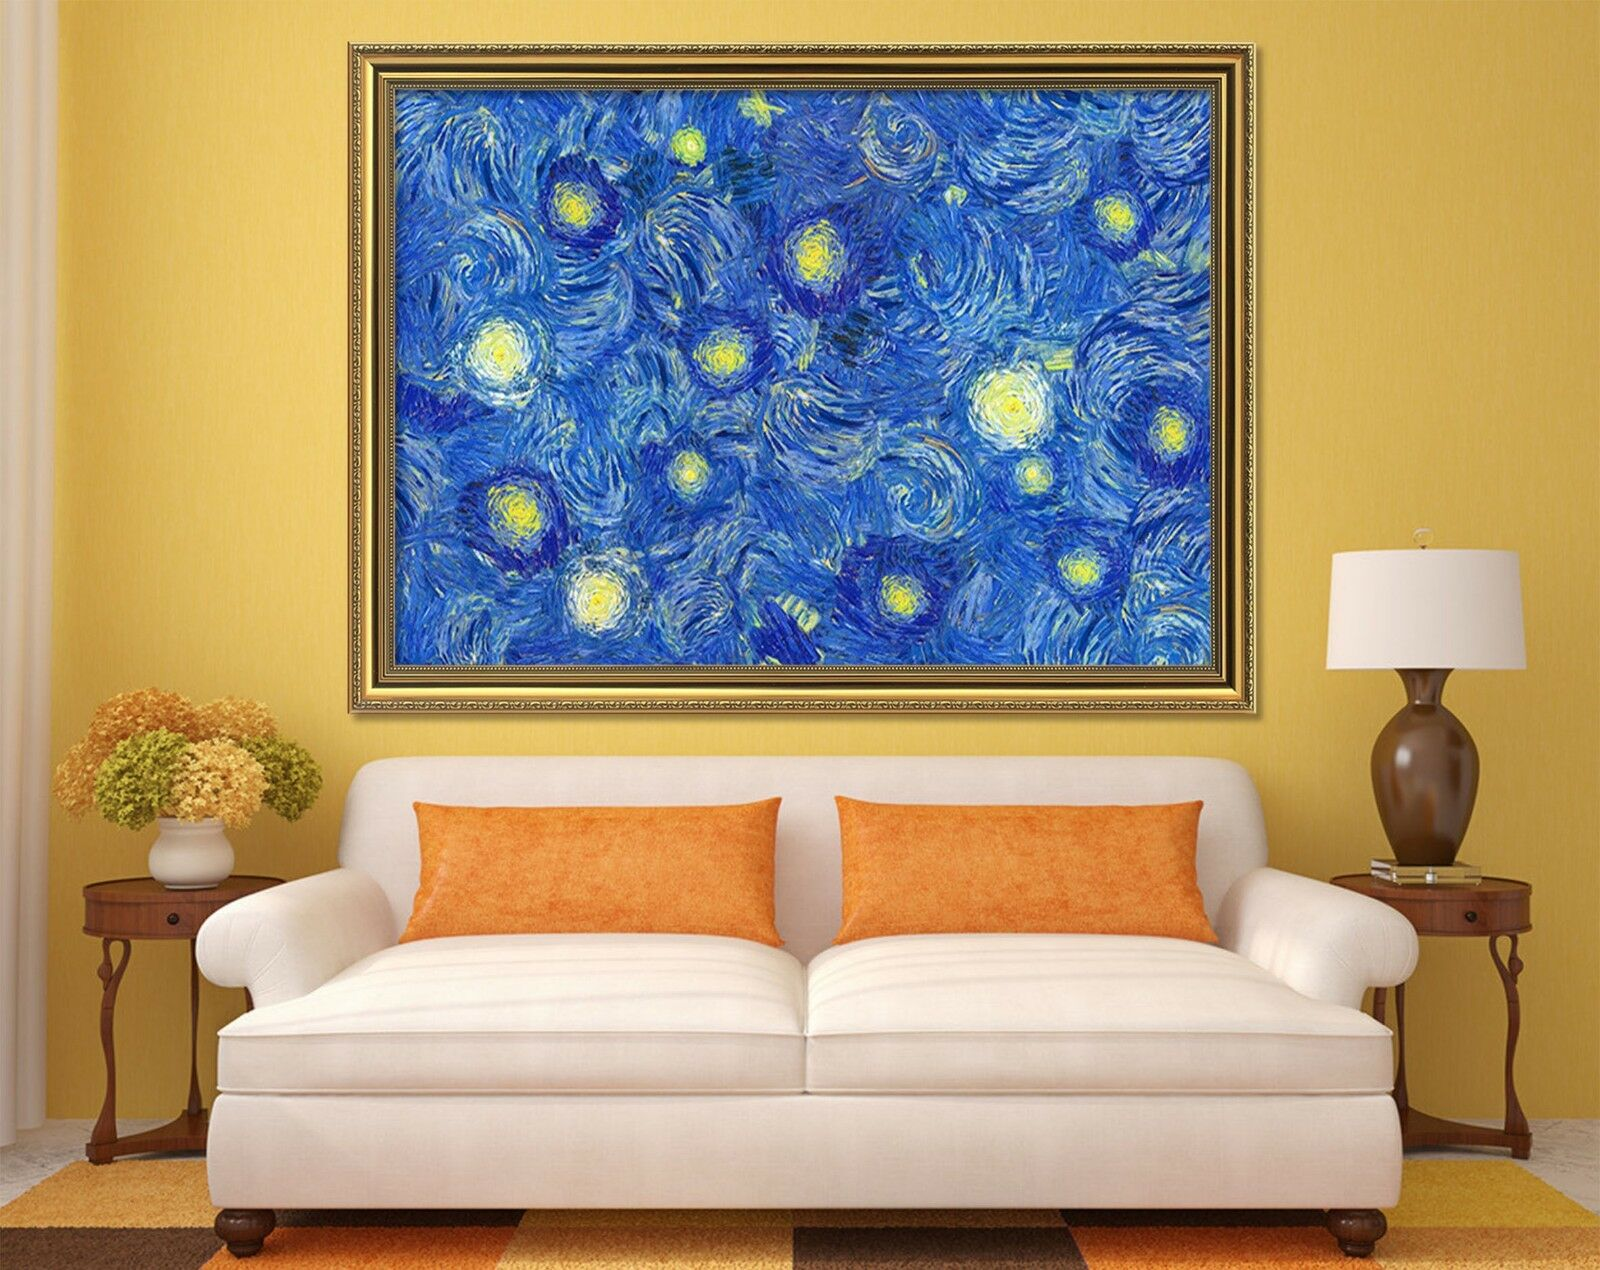 3D Farbe Paint 65 Fake Framed Poster Home Decor Print Painting Unique Art Summer